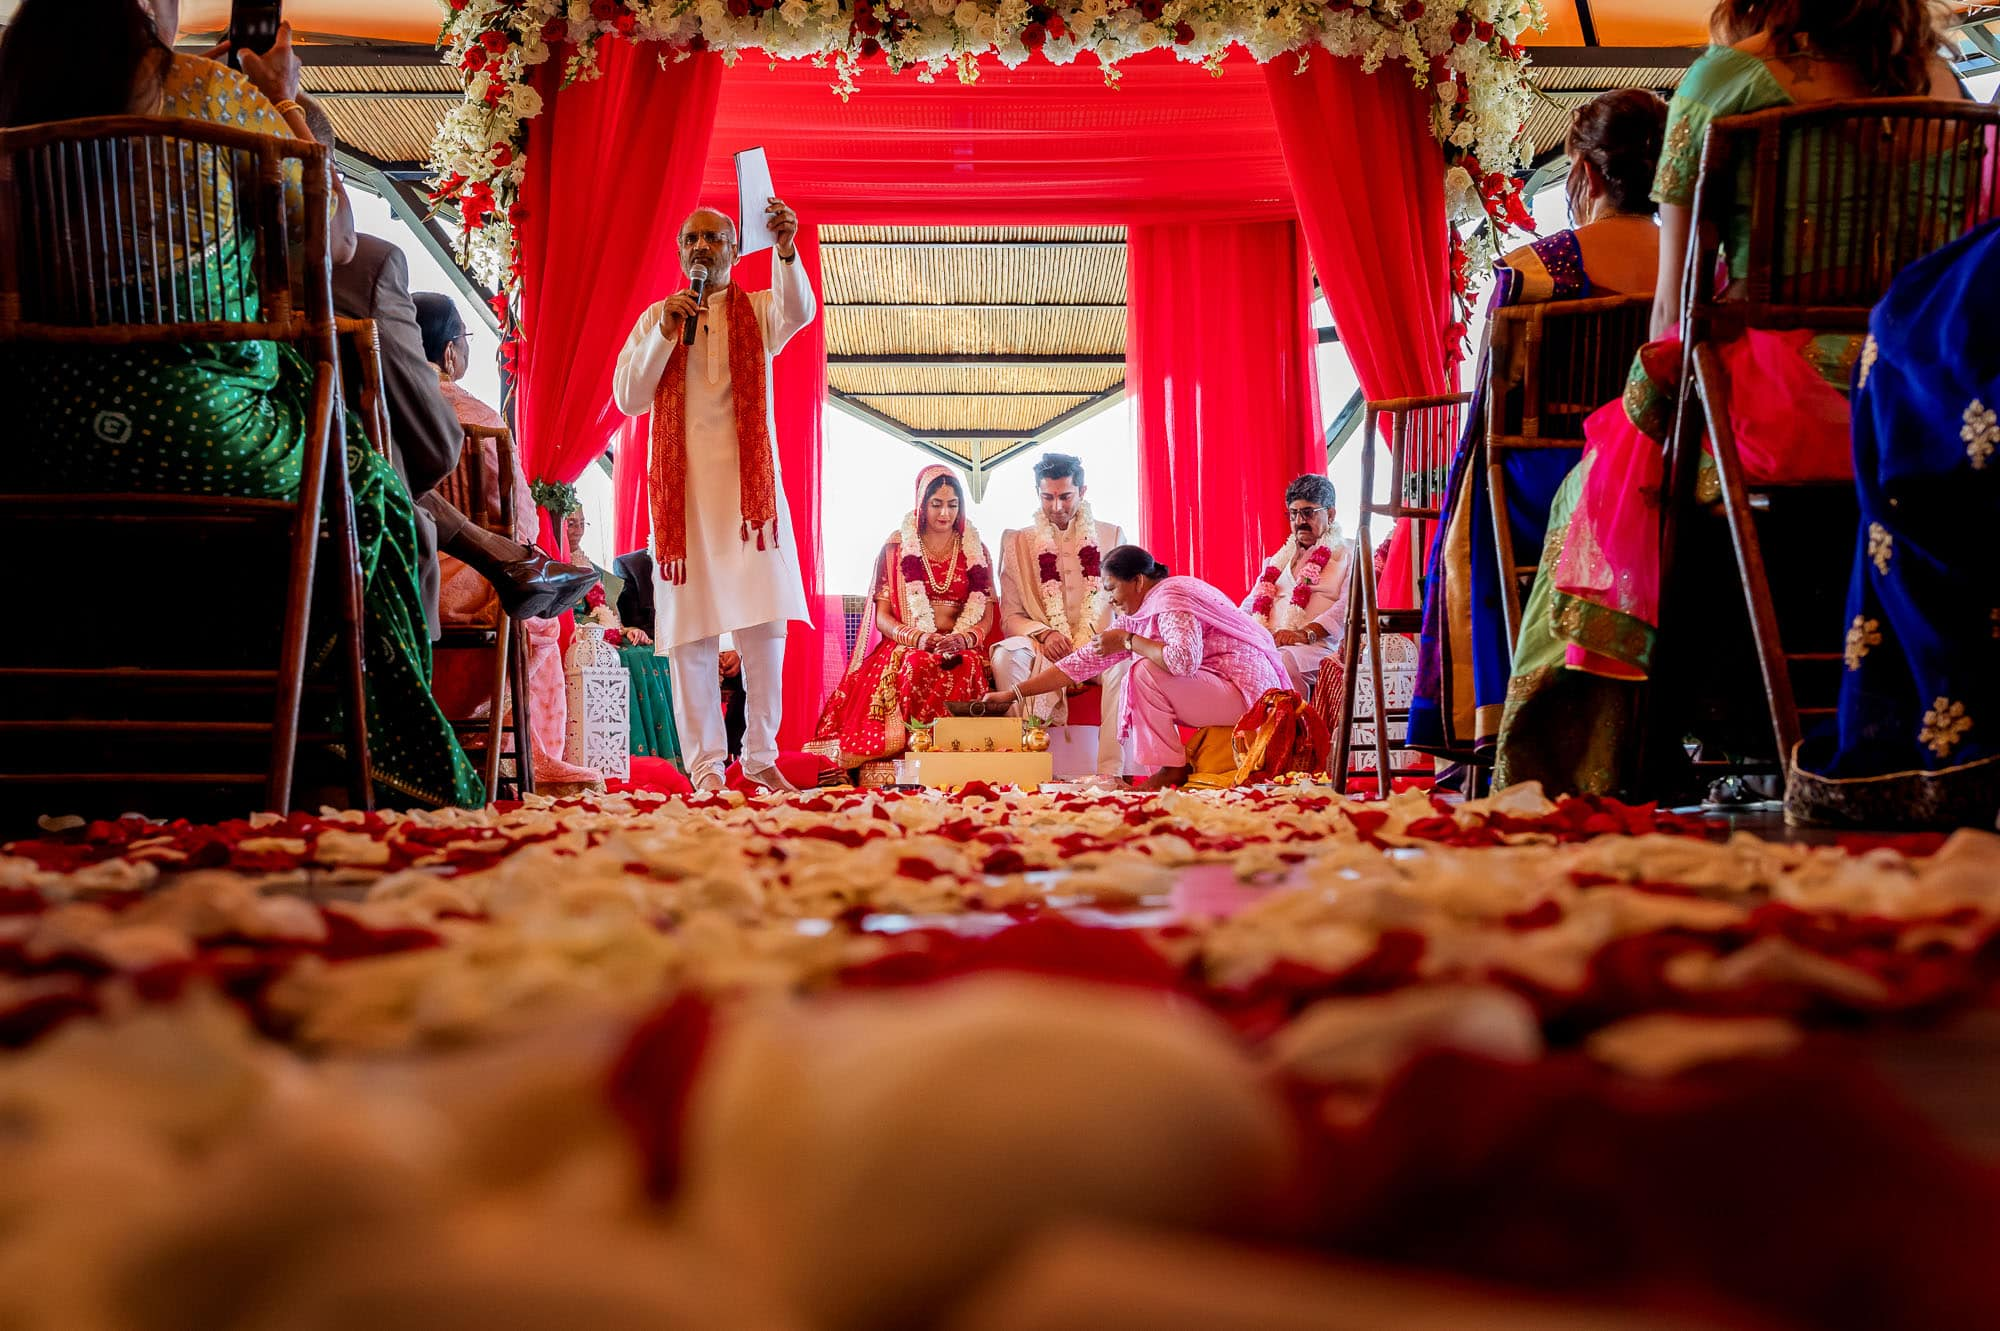 Stoking the fire in the Mandap